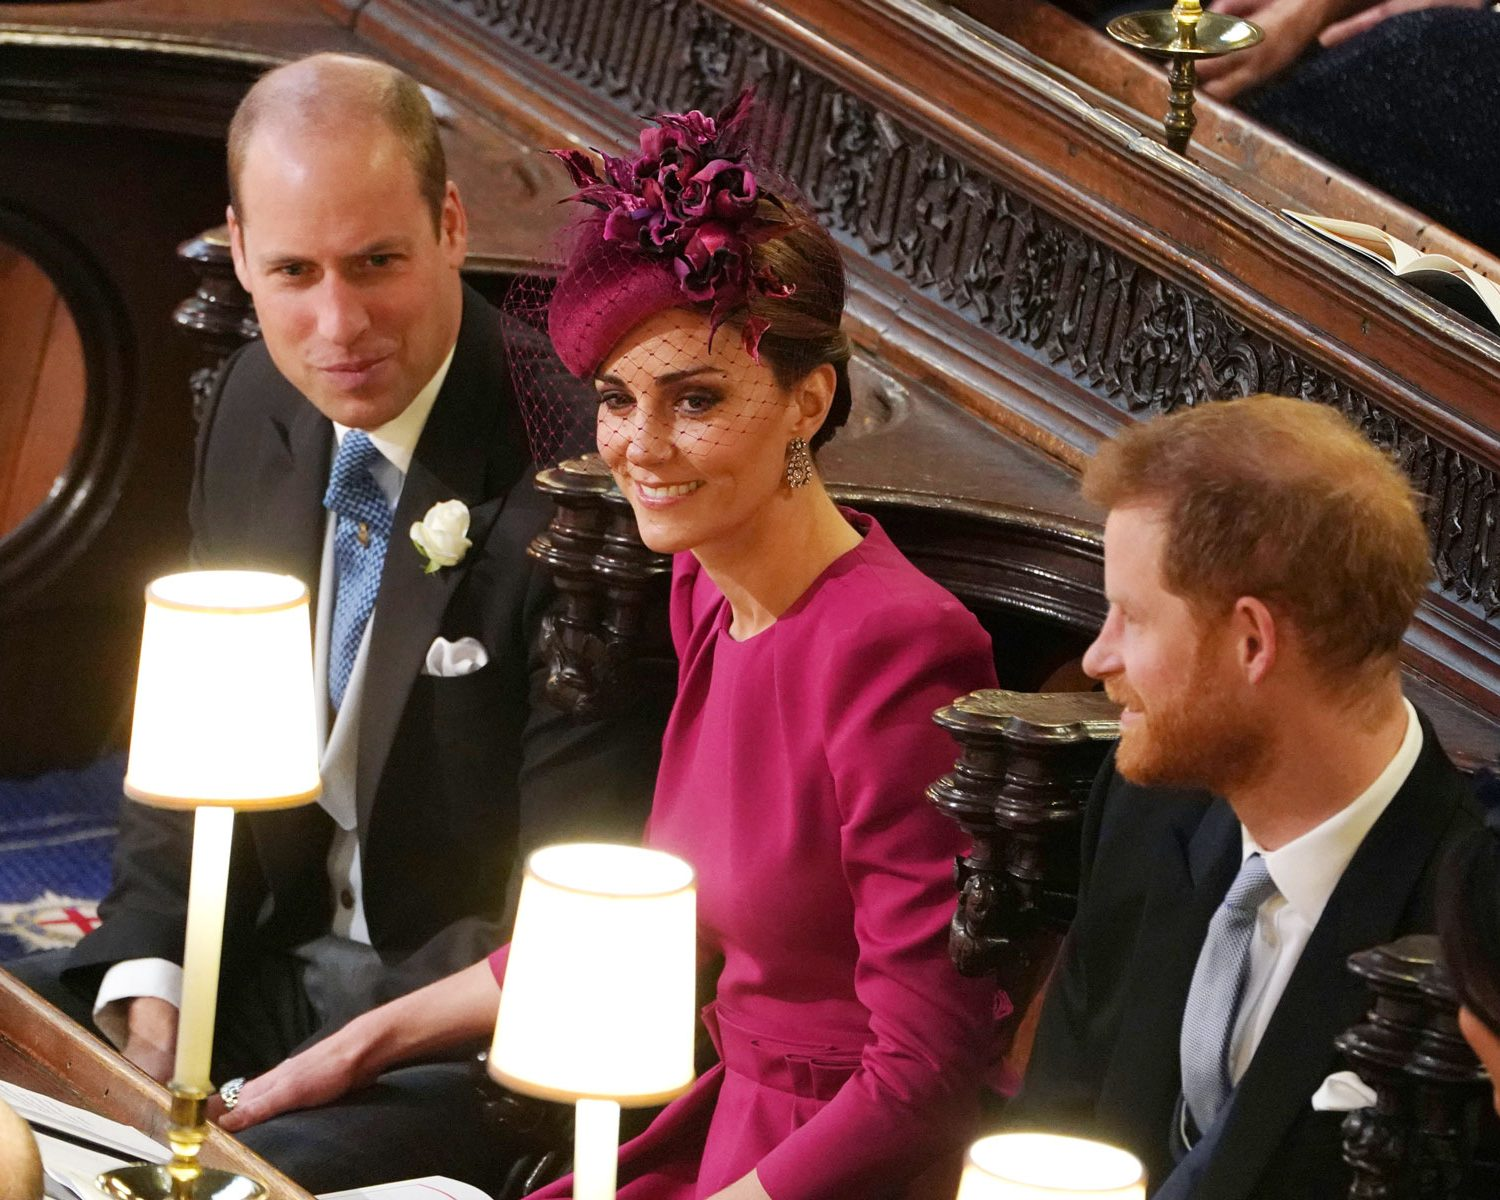 Prince William and Kate Middleton Hold Hands in Rare PDA Moment at ...